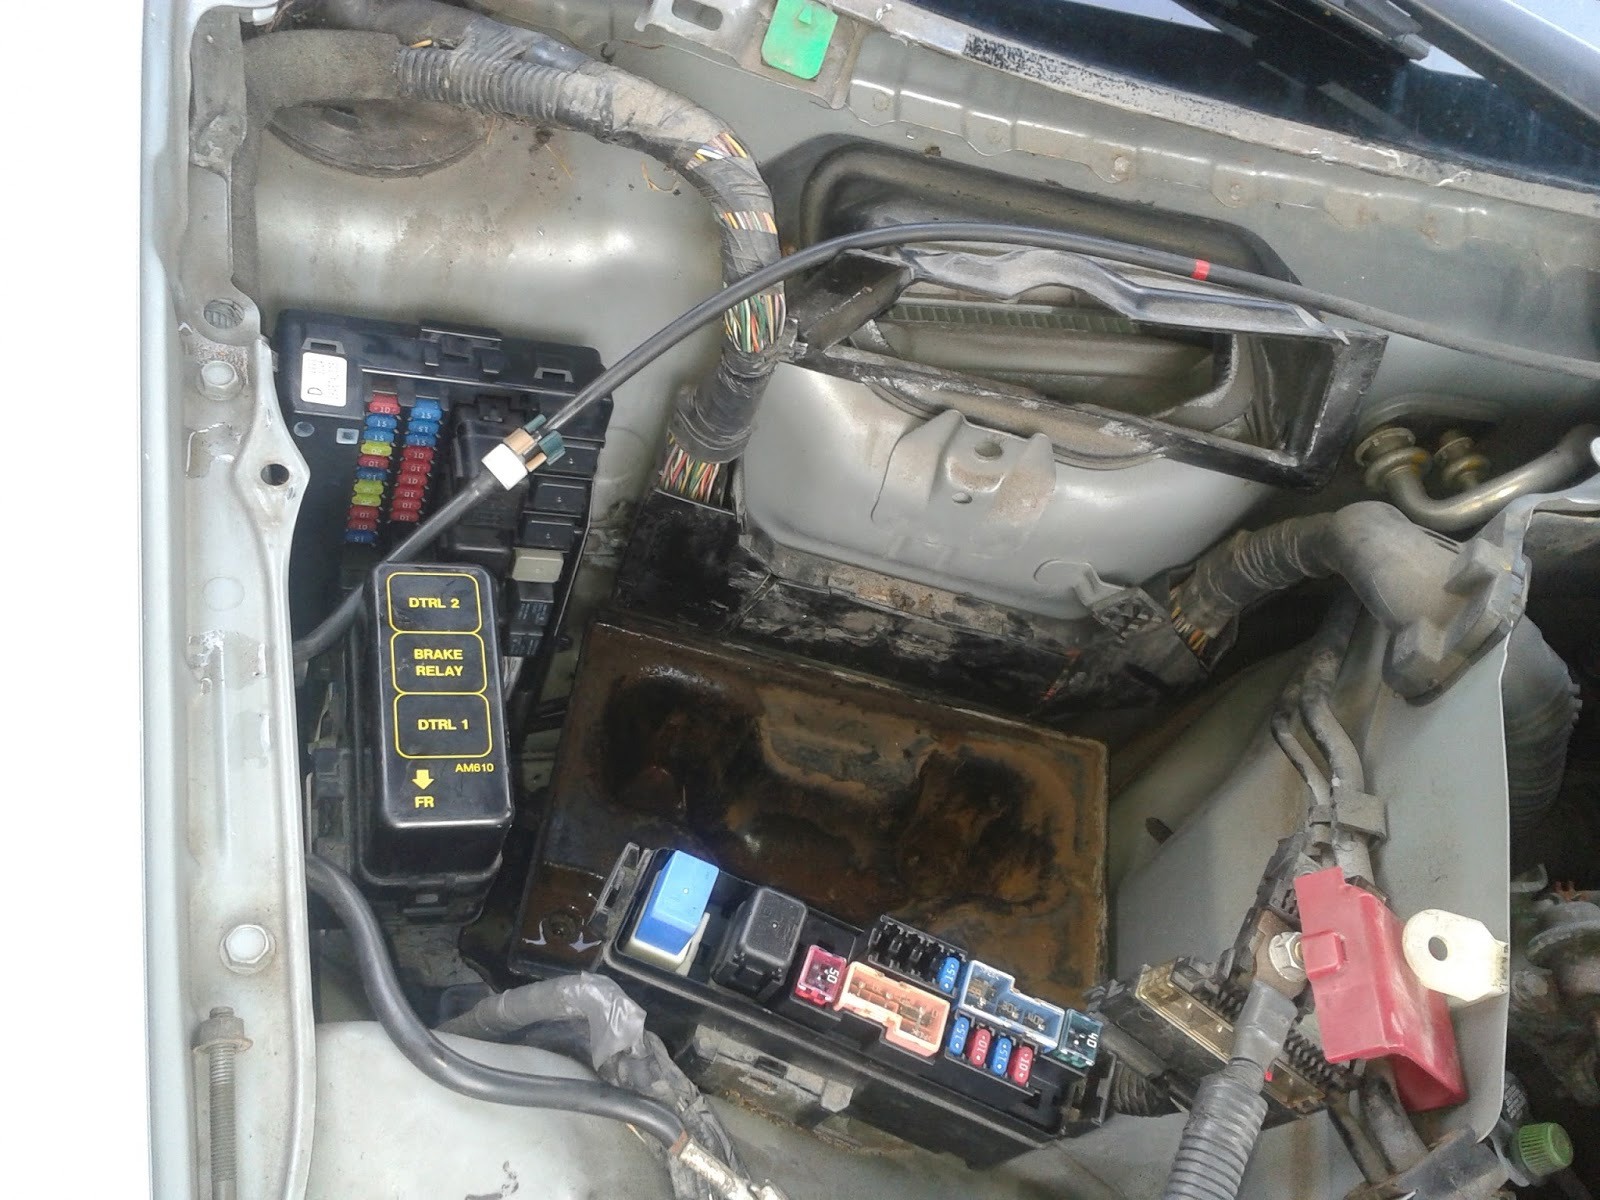 2015 05 27%2B18.55.50 zf inifiniti g35 2003 wet ipdm issue, how to fix it infiniti g35 fuse box layout at aneh.co